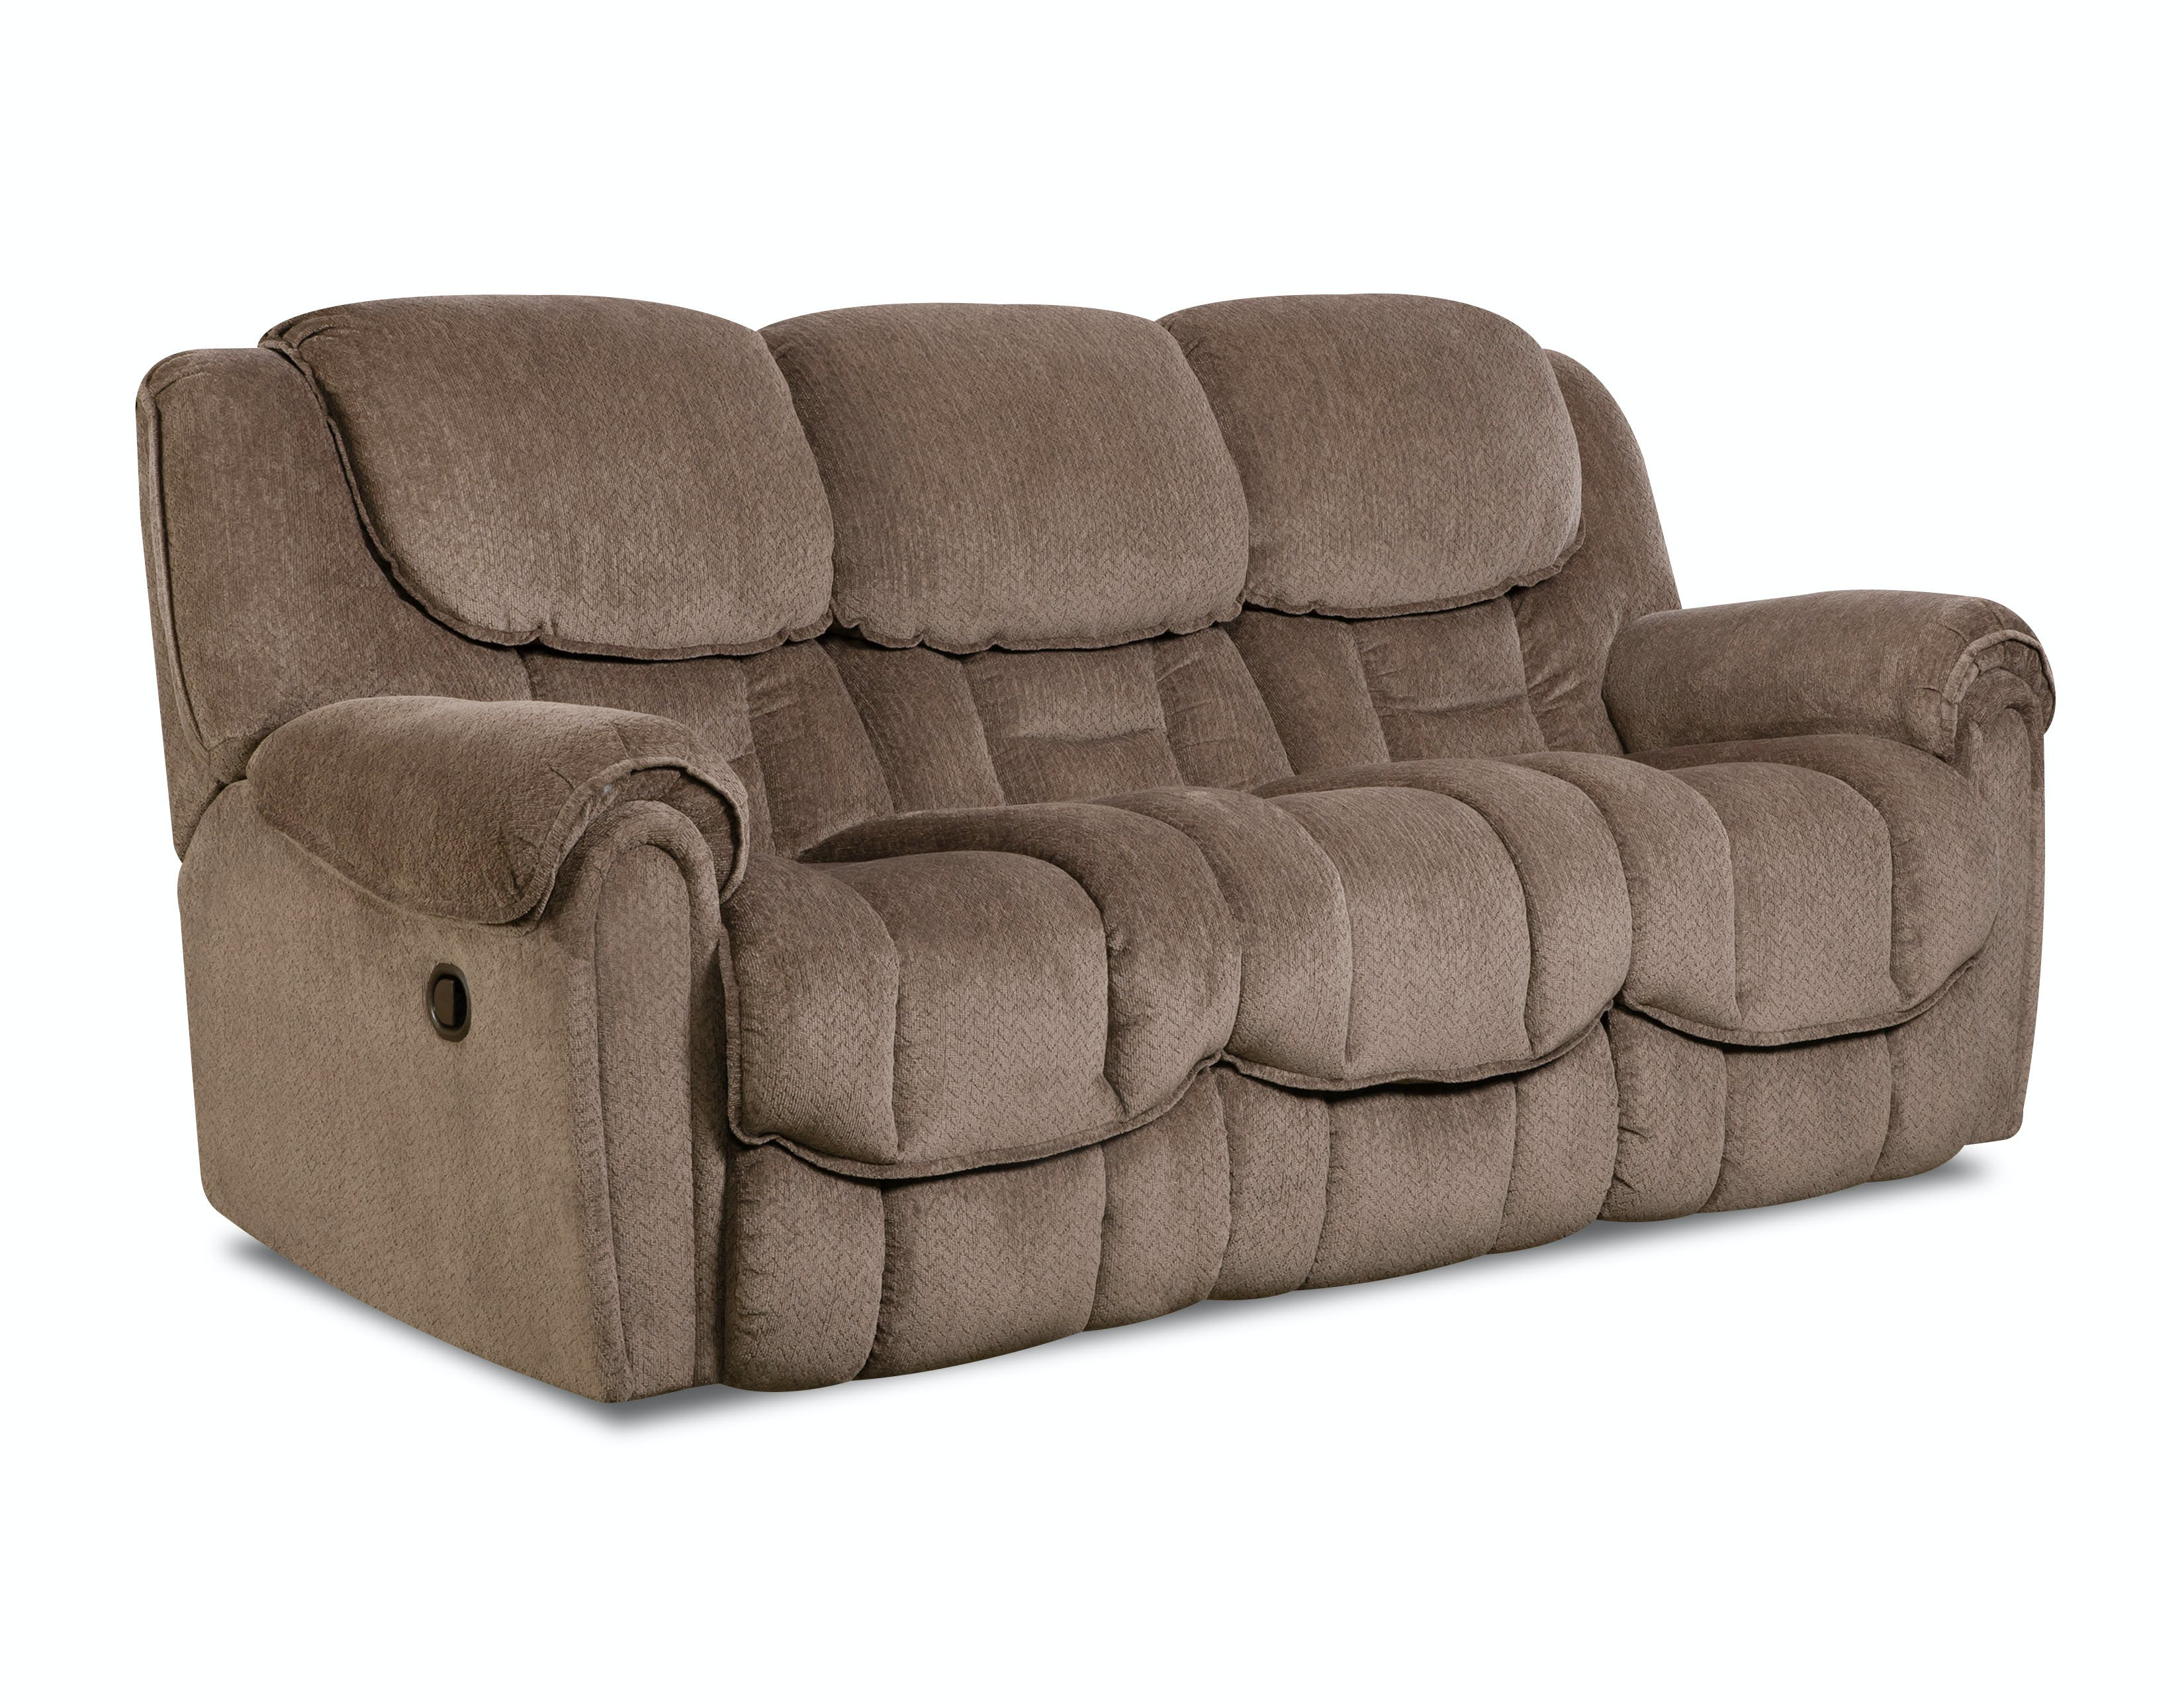 Picture of: Homestretch Living Room Double Reclining Sofa 122 30 17 B F Myers Furniture Nashville Tn